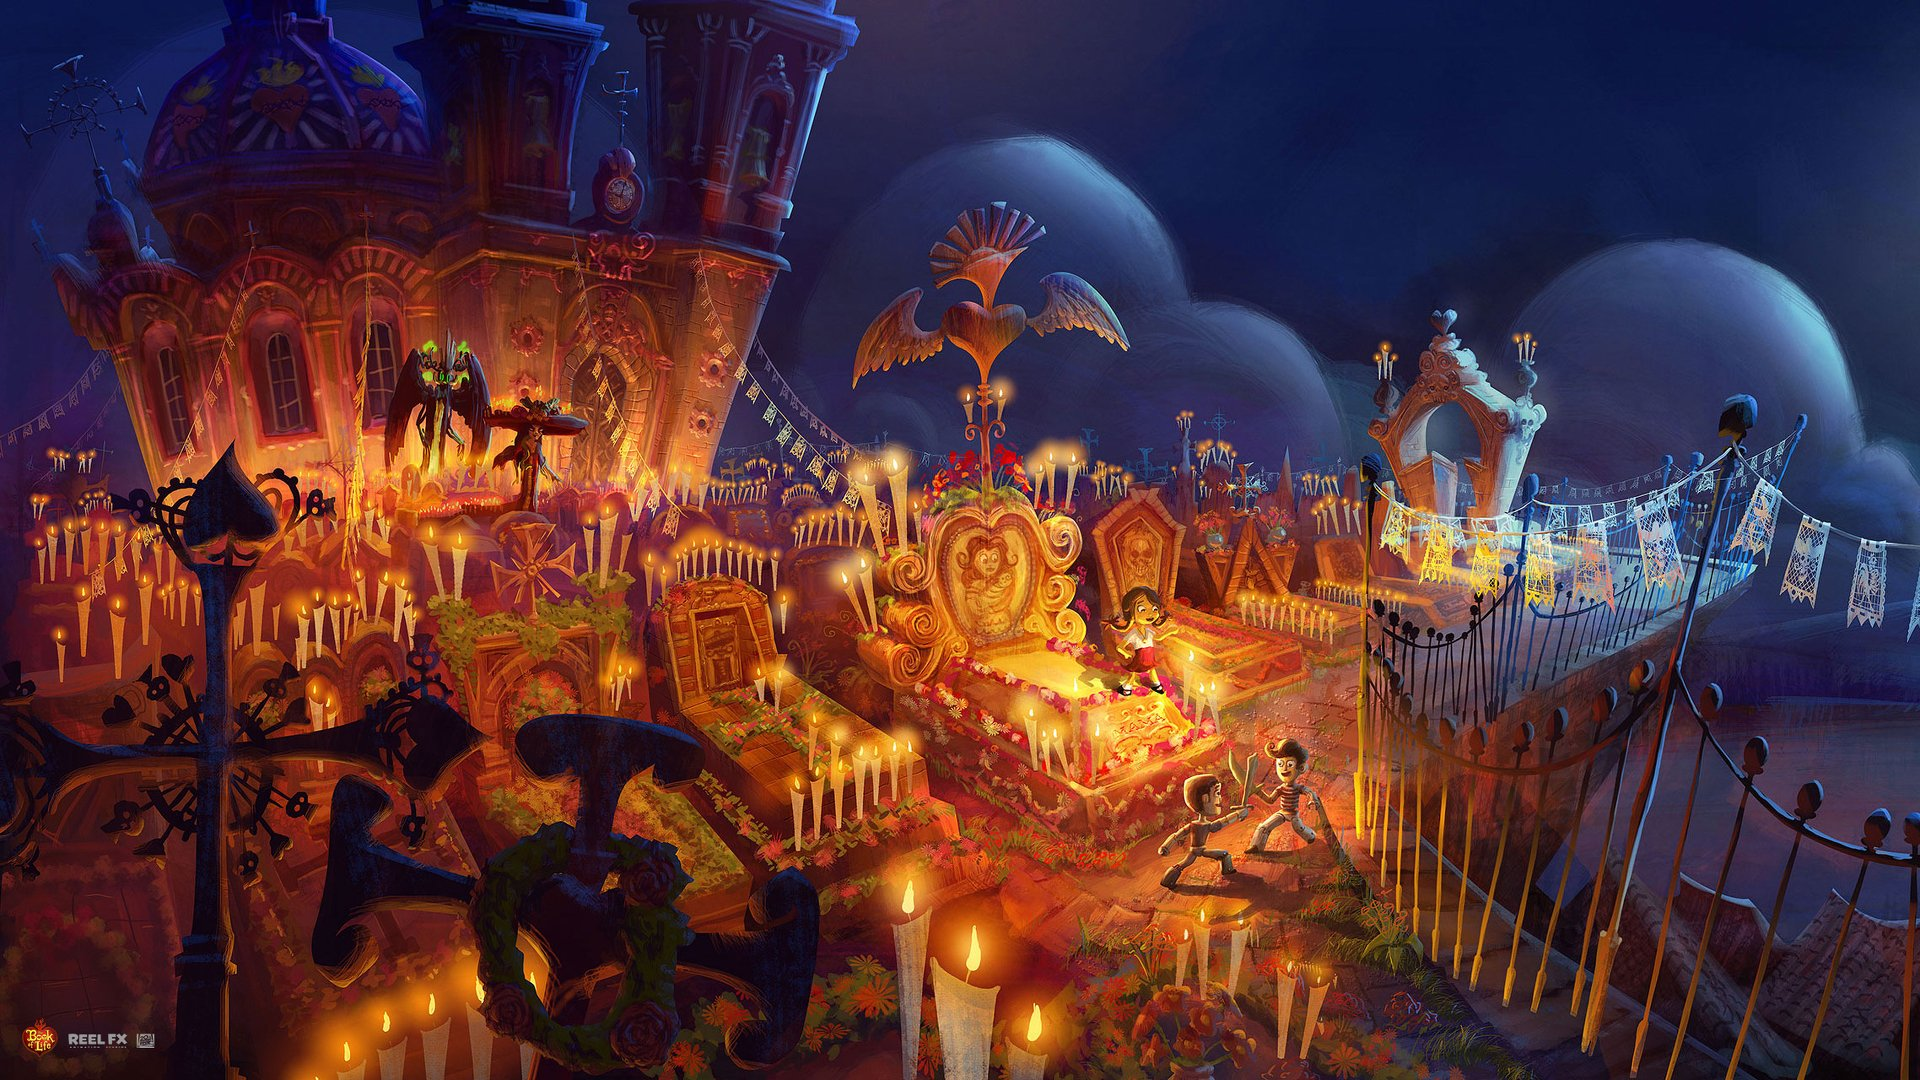 book of life wallpaper  The Book of Life HD Wallpaper | Background Image | 1920x1080 | ID ...